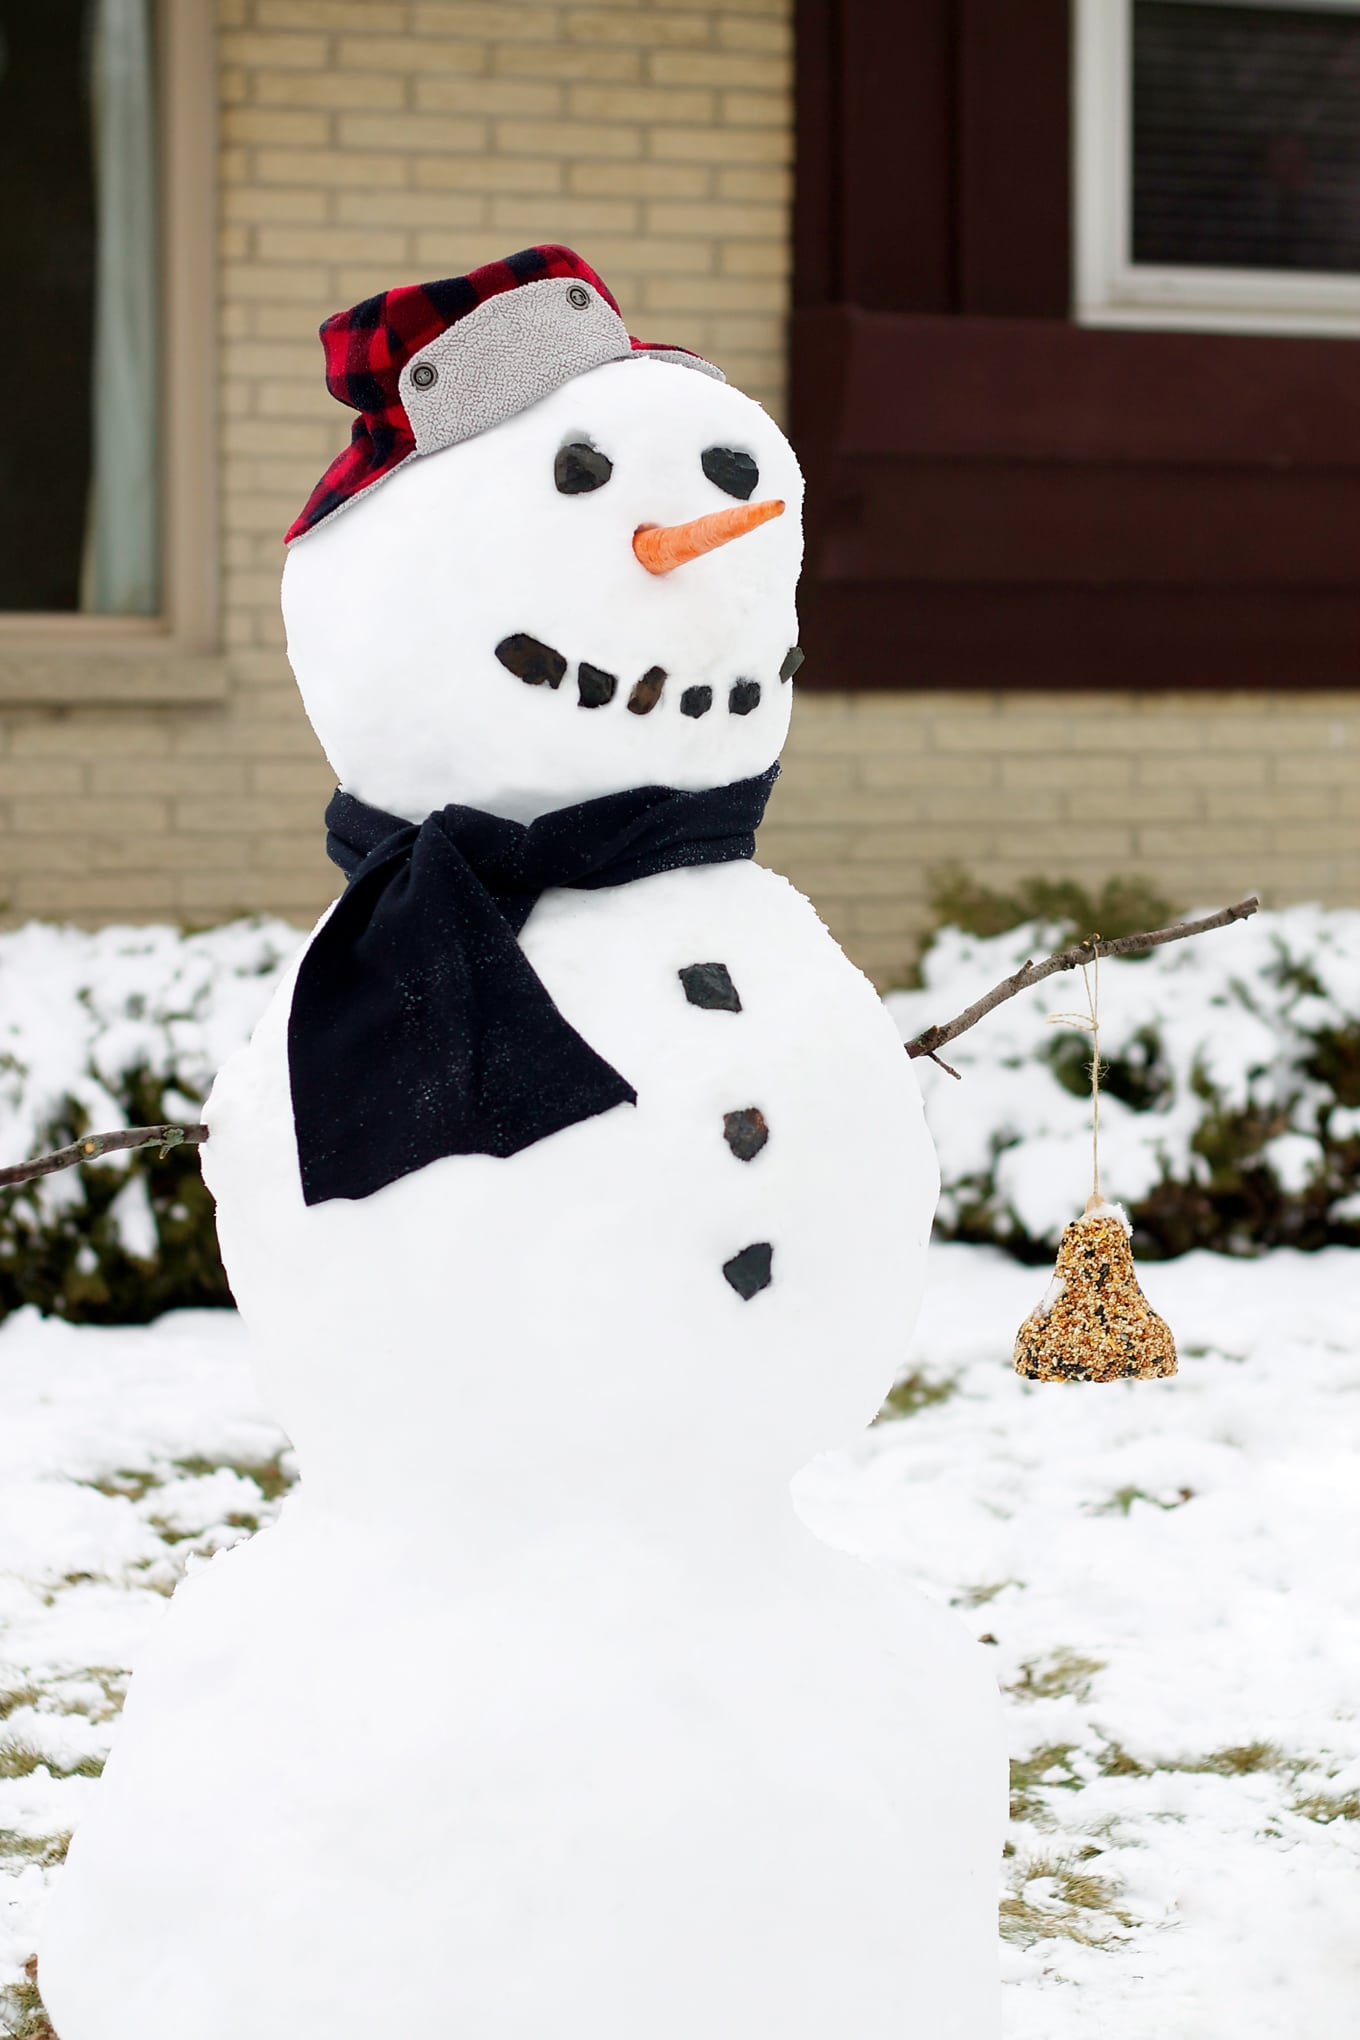 How to sculpt a snowman 8